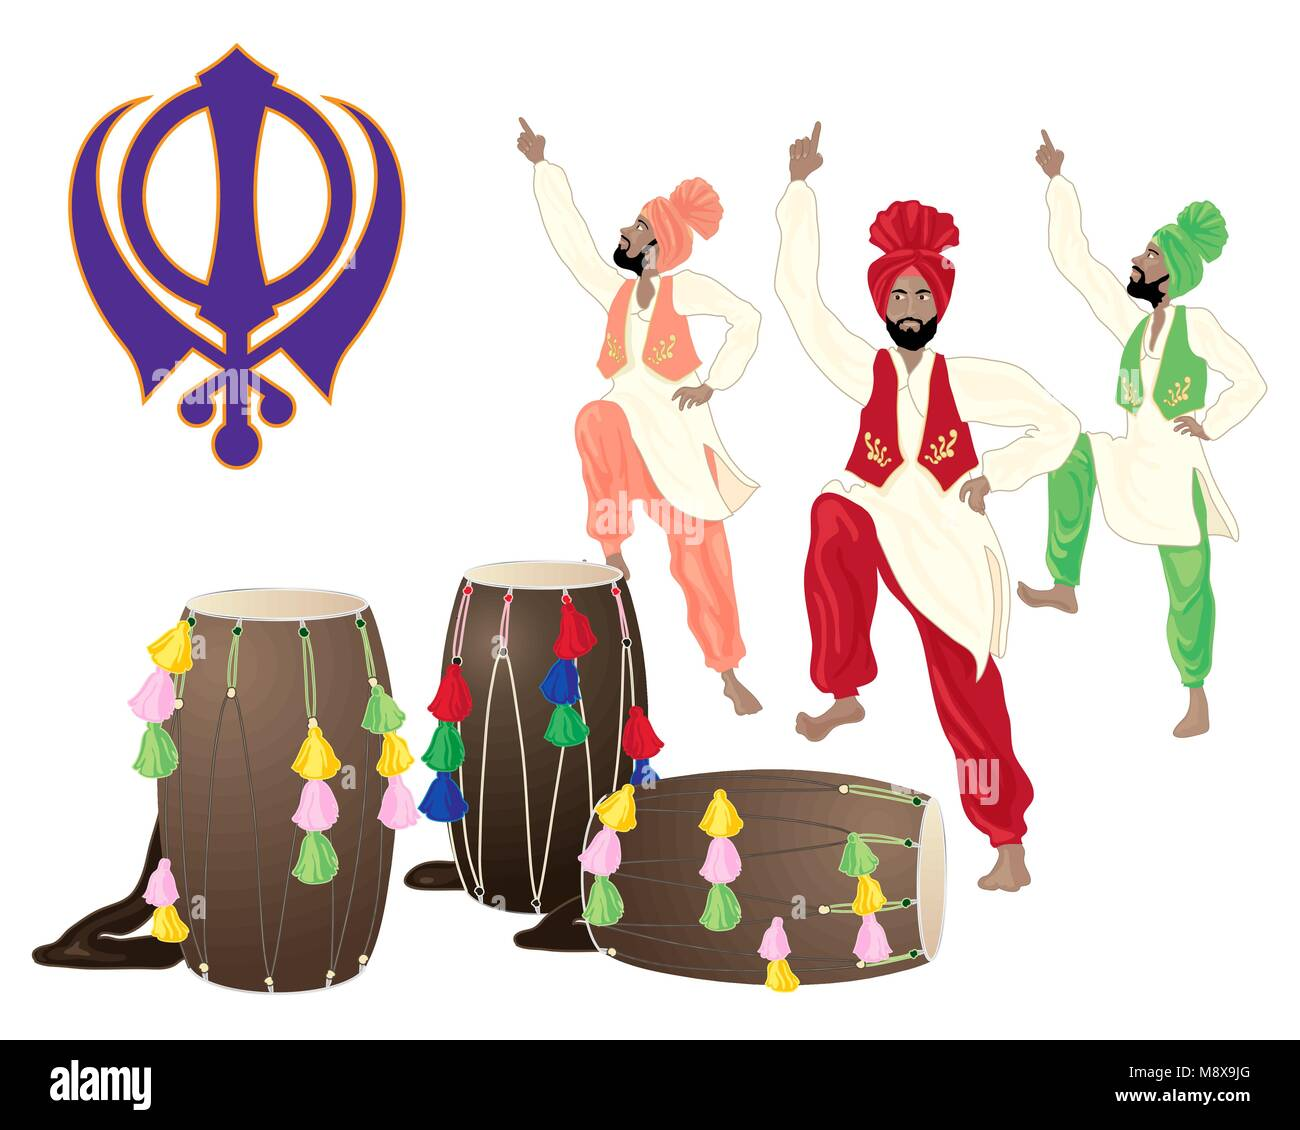 a vector illustration in eps 10 format of a Punjabi drums male dancers and the Sikh symbol on a white background - Stock Vector